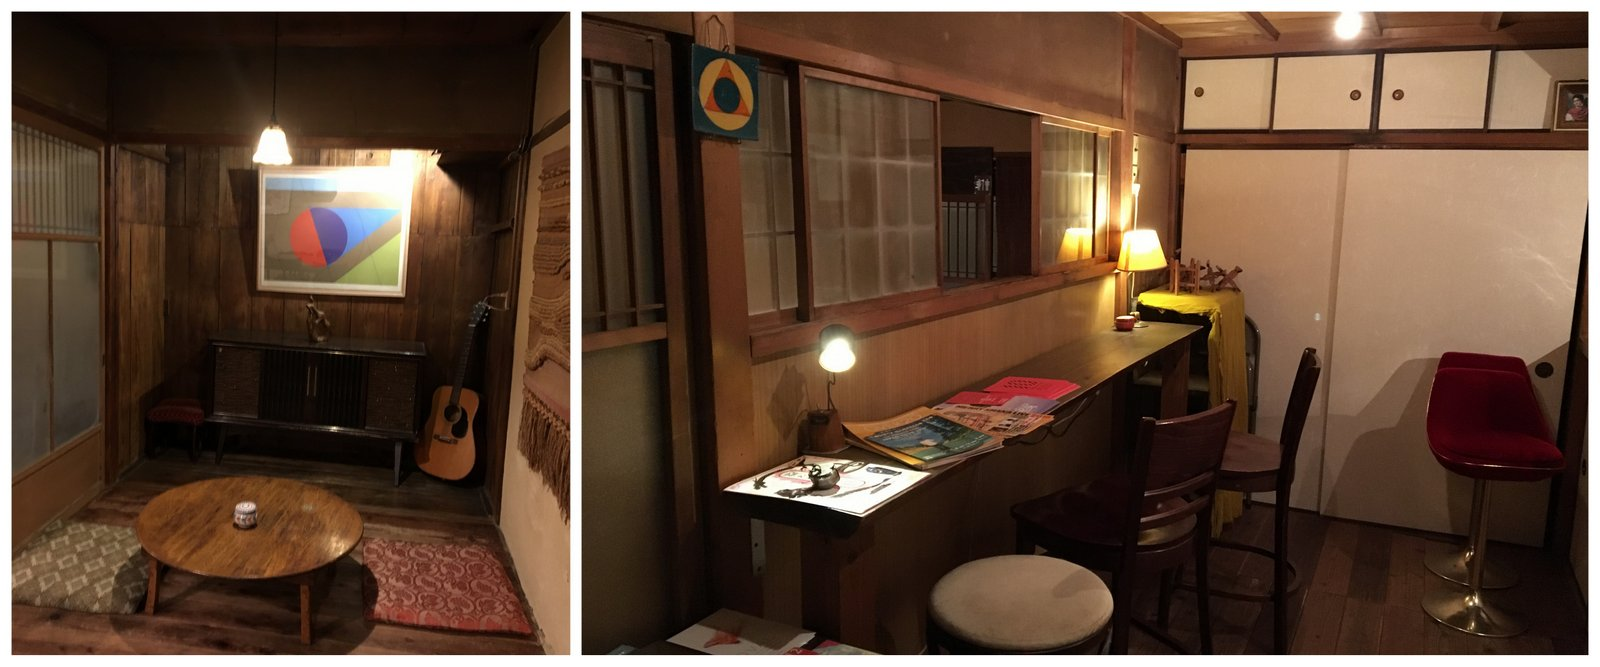 gojo-guest-house-kyoto